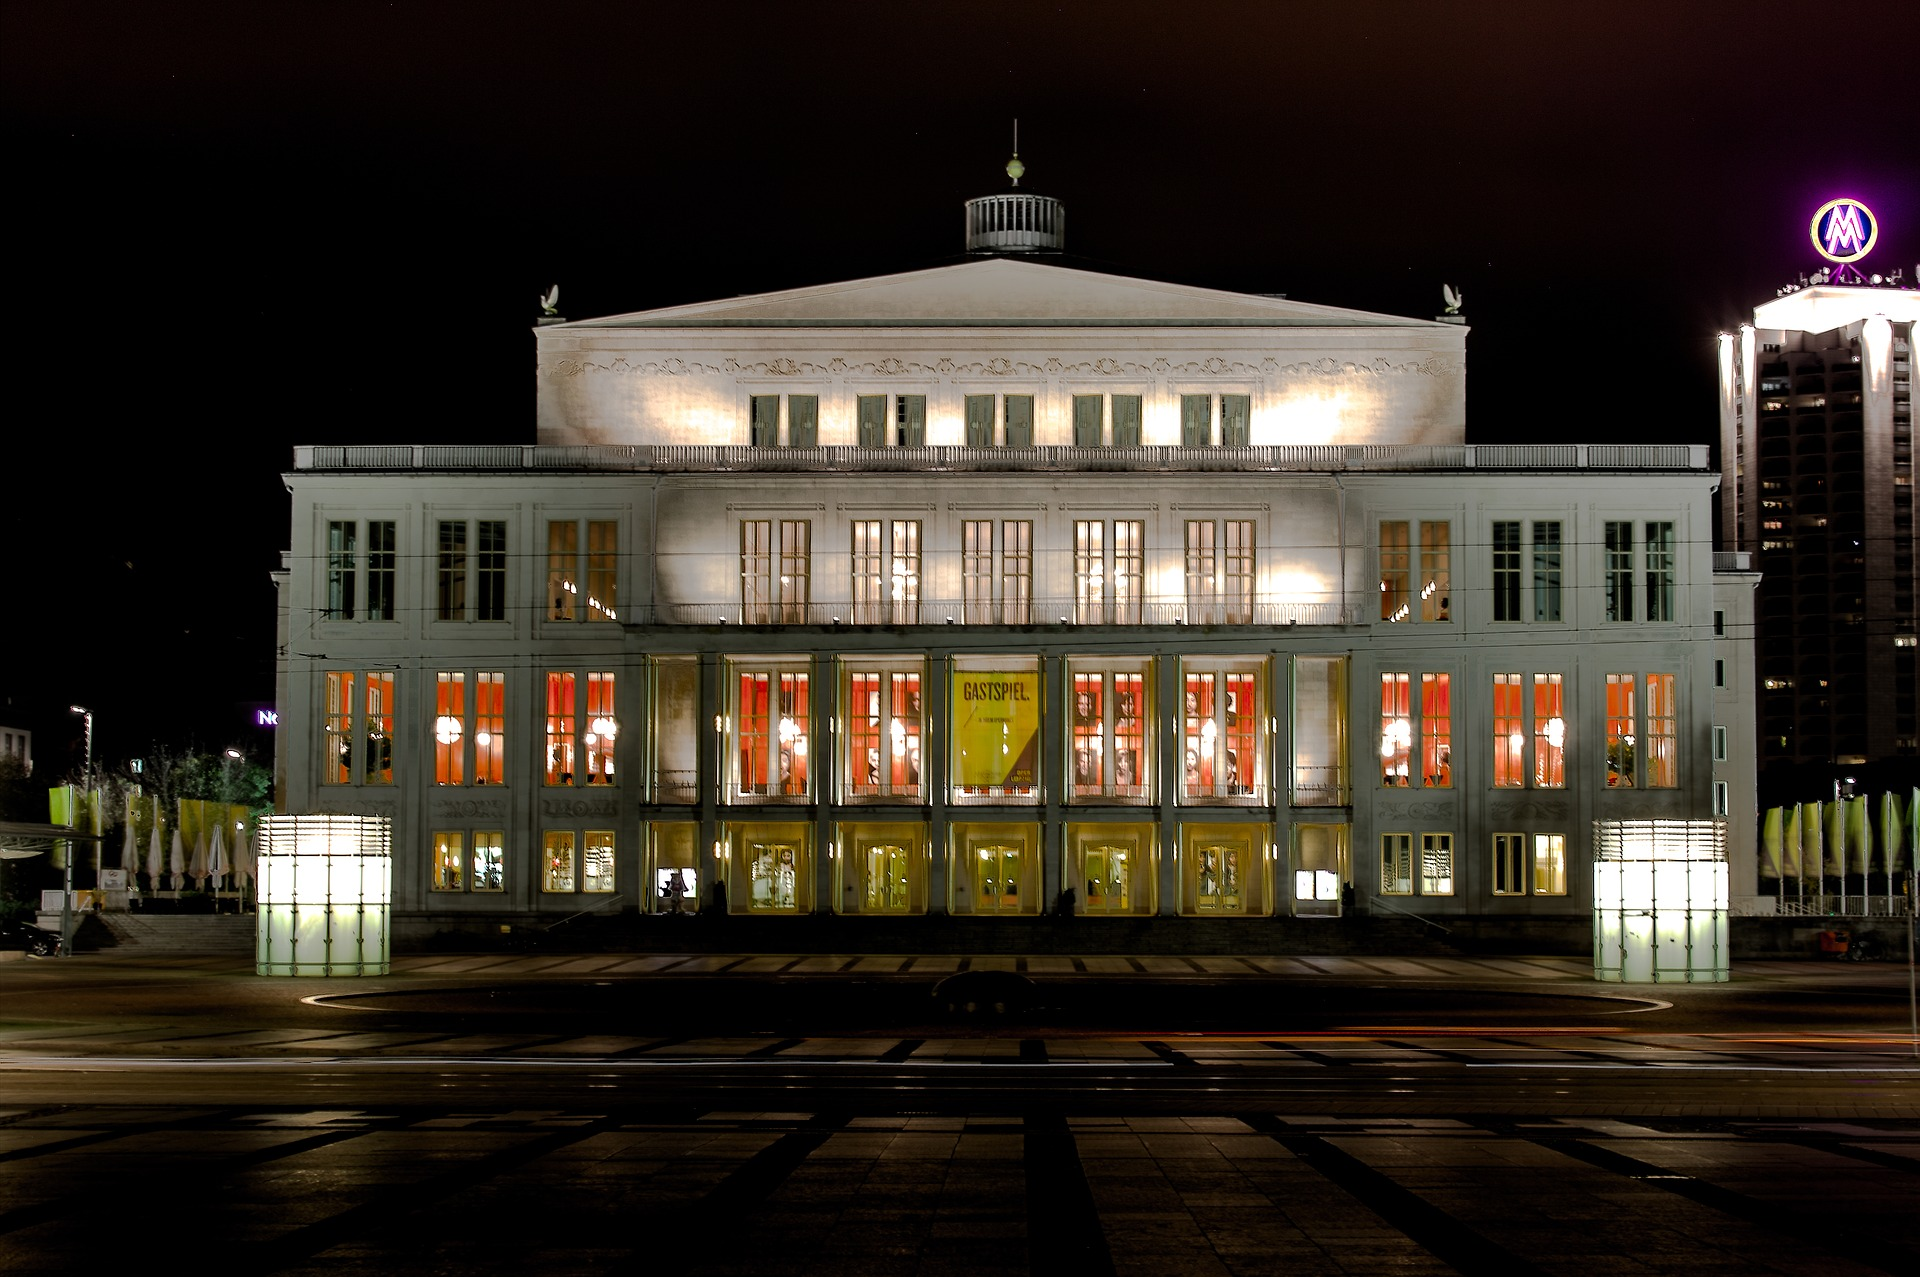 Leipzig Opera in the evening